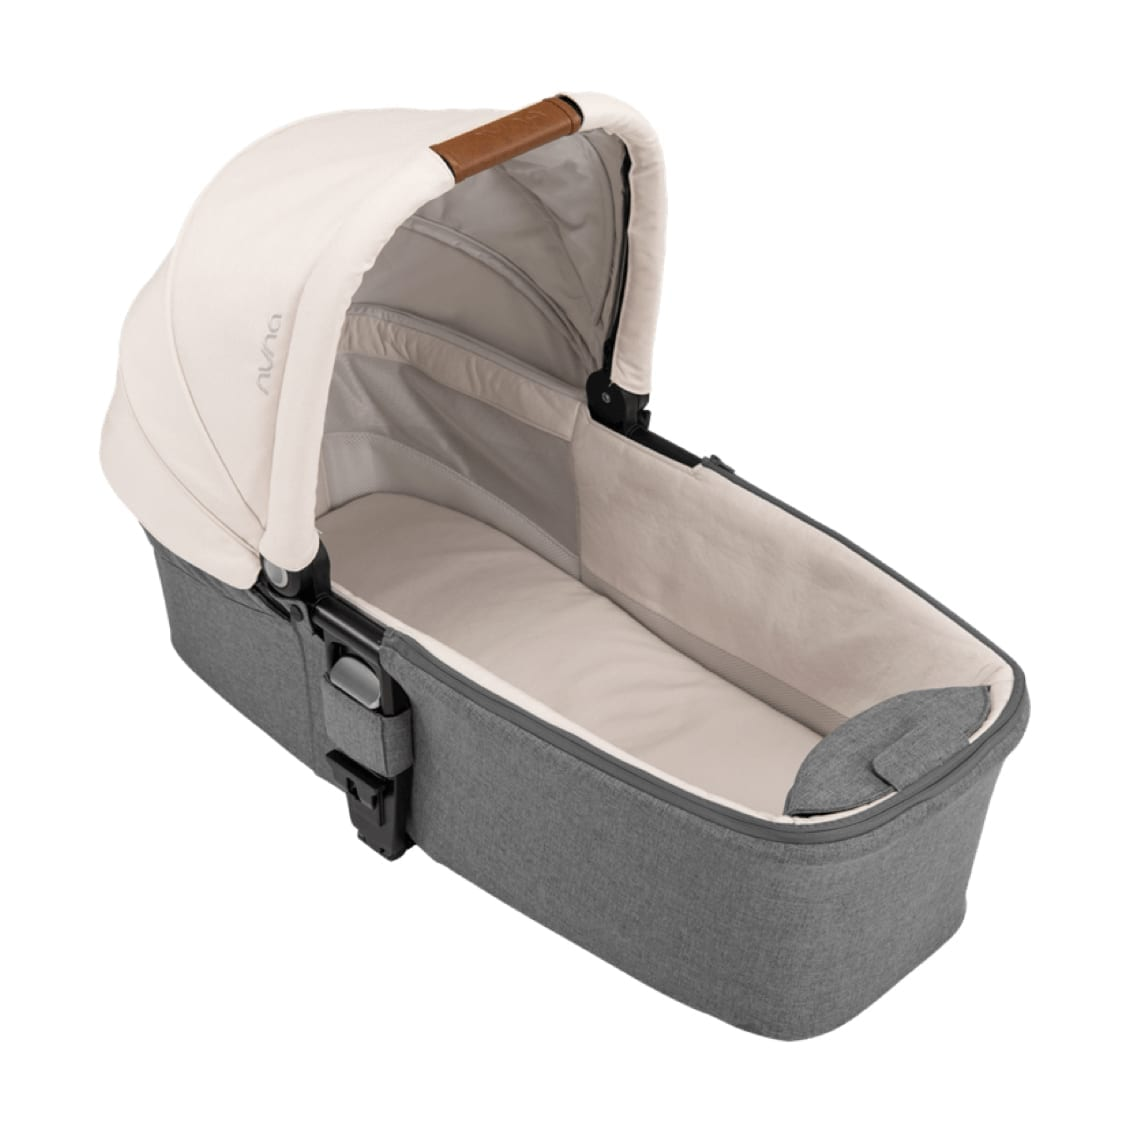 Nuna MIXX Carry Cot – Birch product image